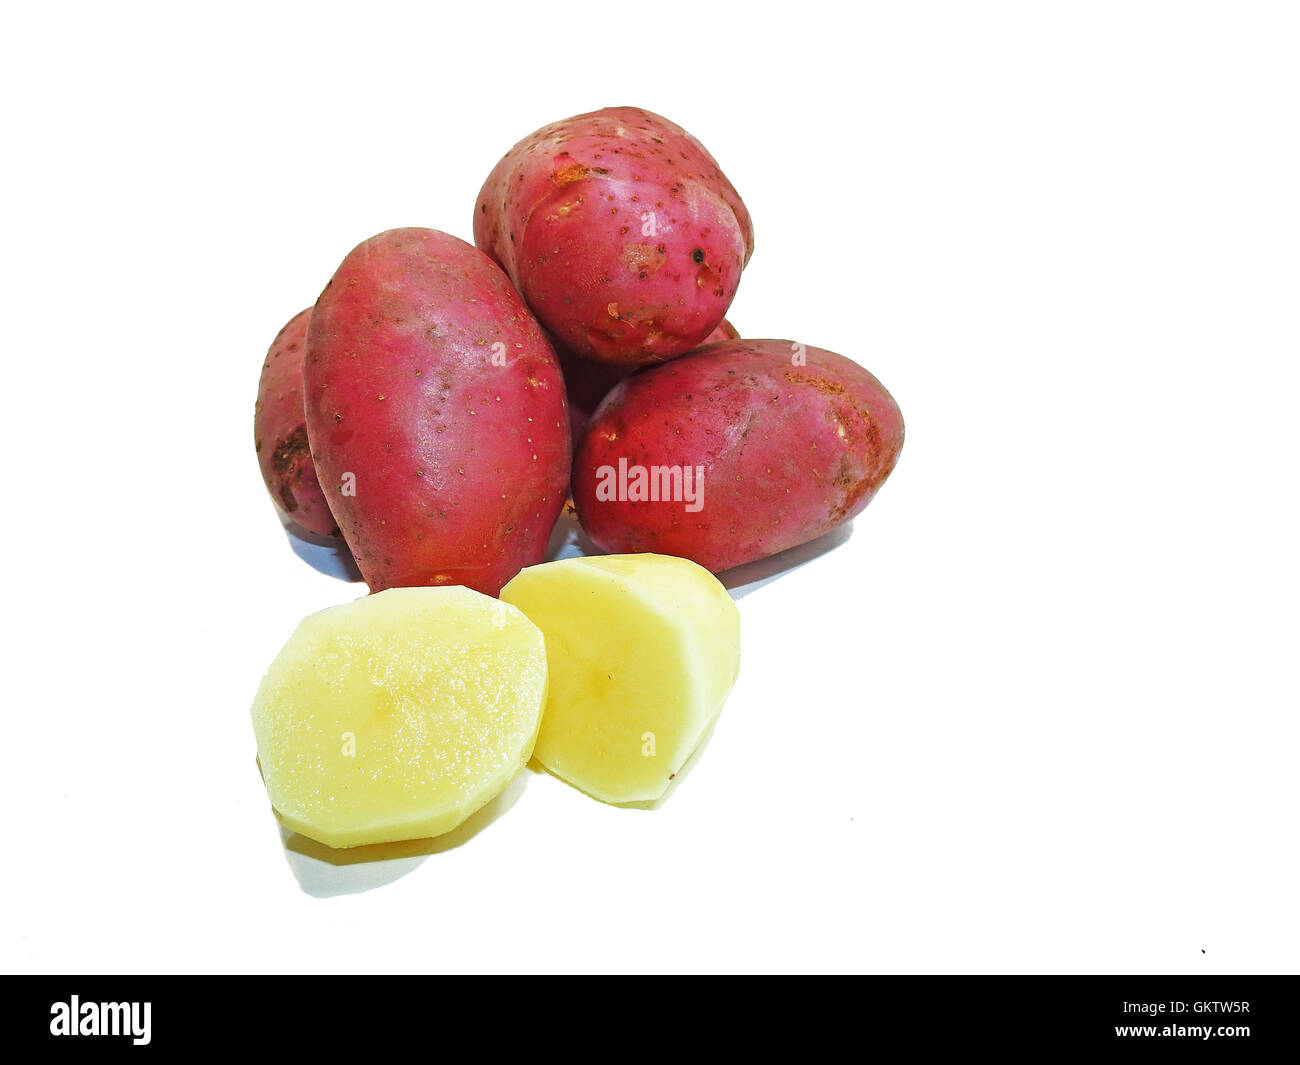 Red fresh potatoes. - Stock Image